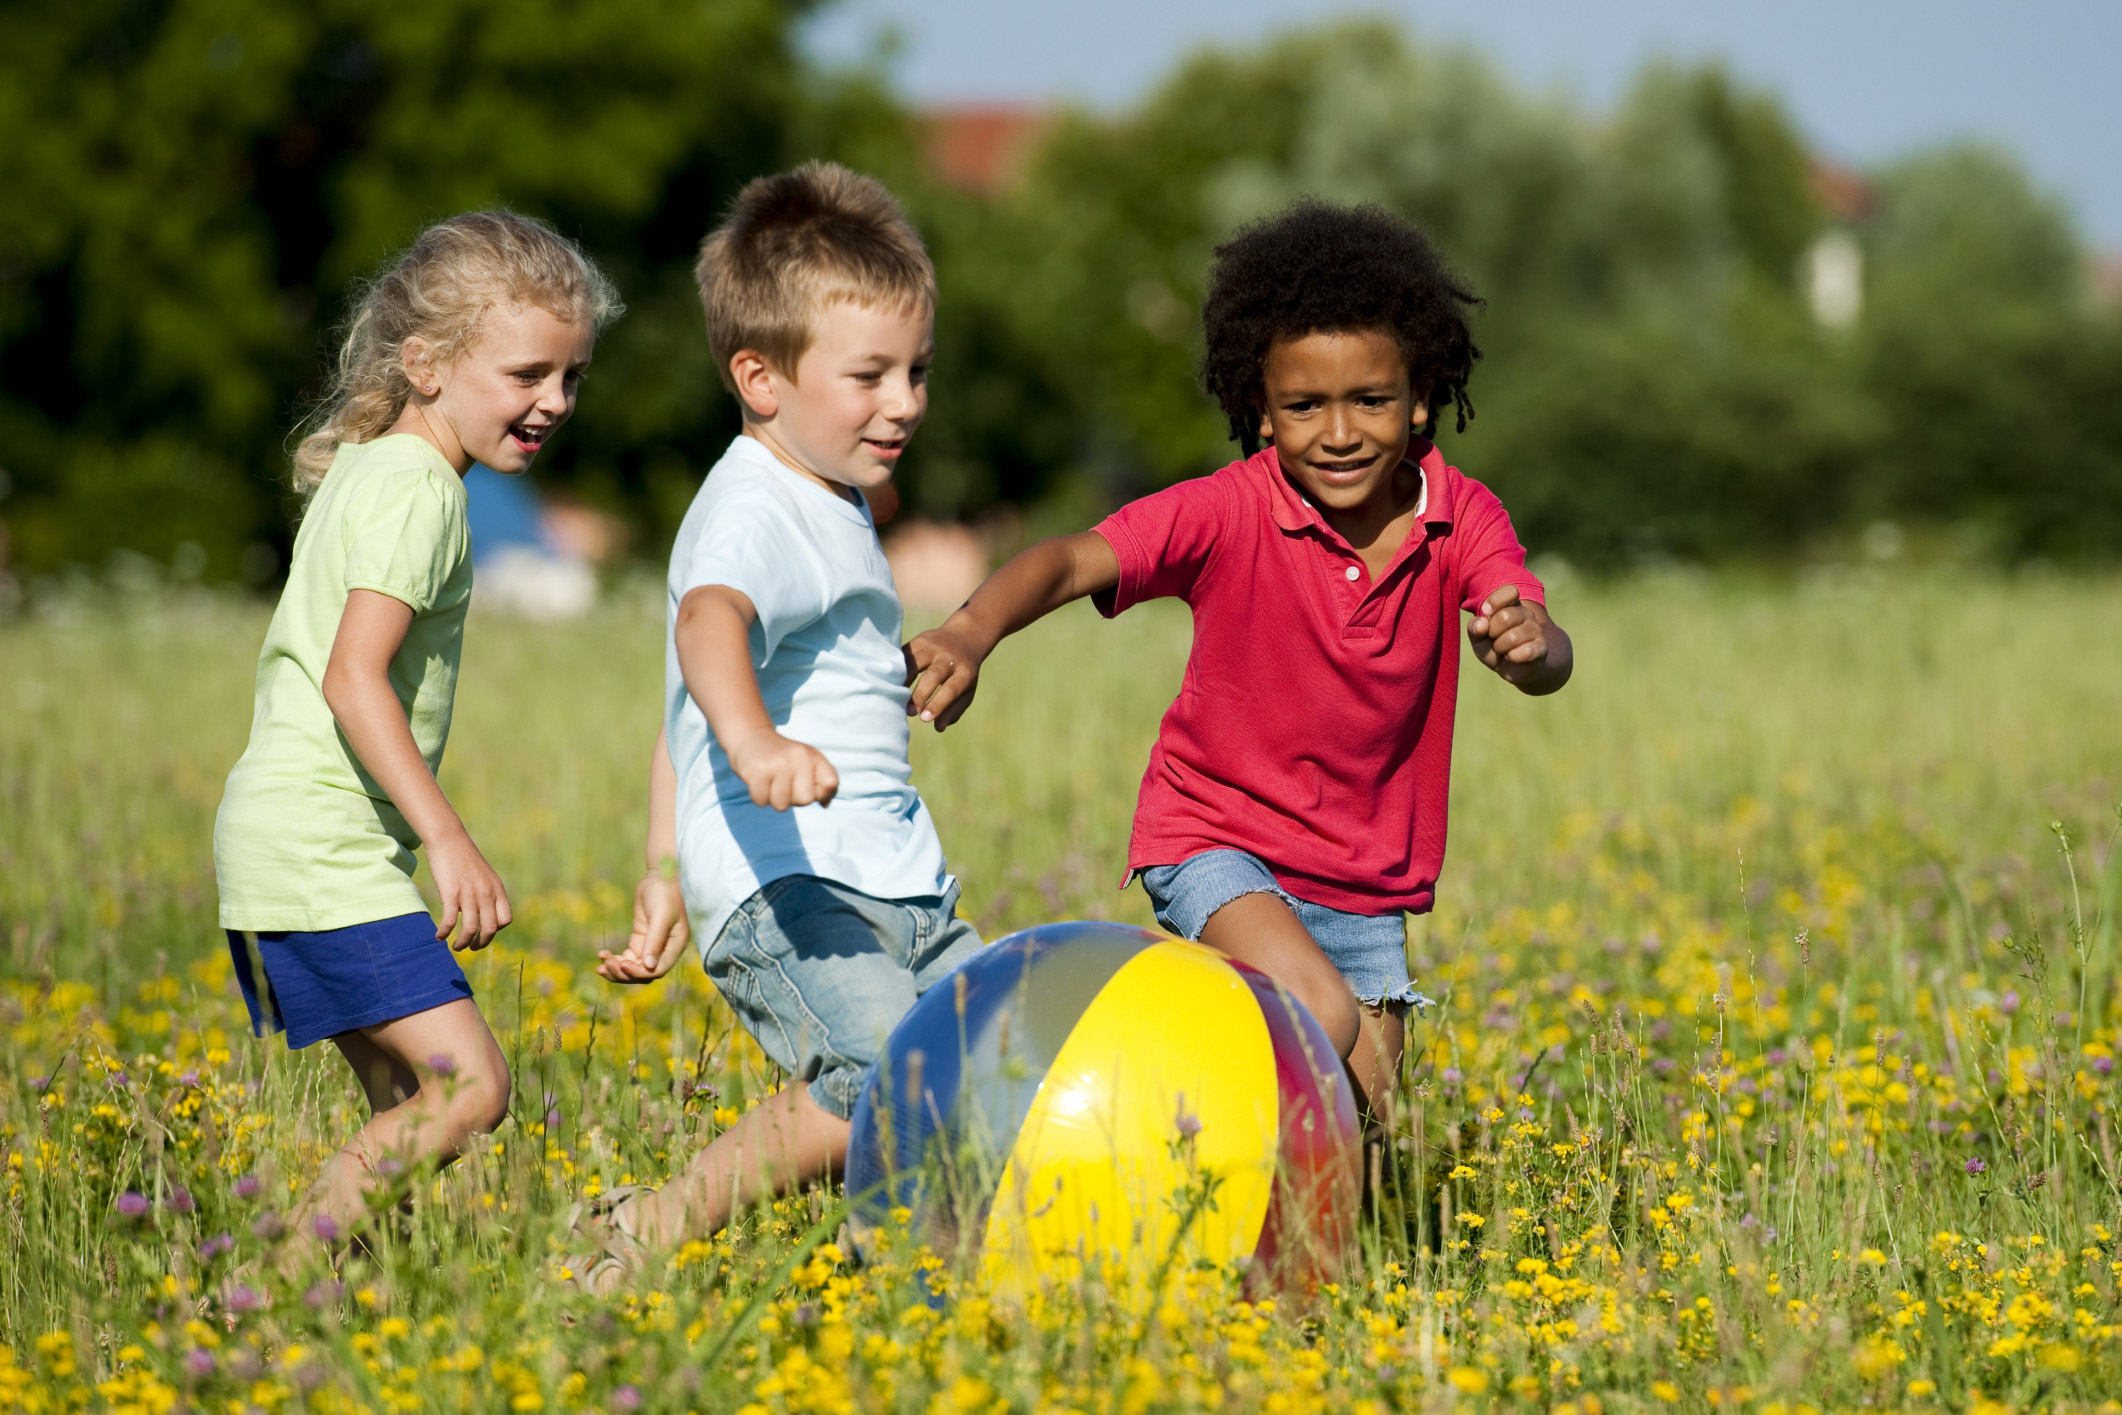 child development and the environment Division of child development child care center handbook chapter 3: outdoor learning environment purpose of these requirements it is becoming clearer from emerging research that children need to spend time outdoors to be.